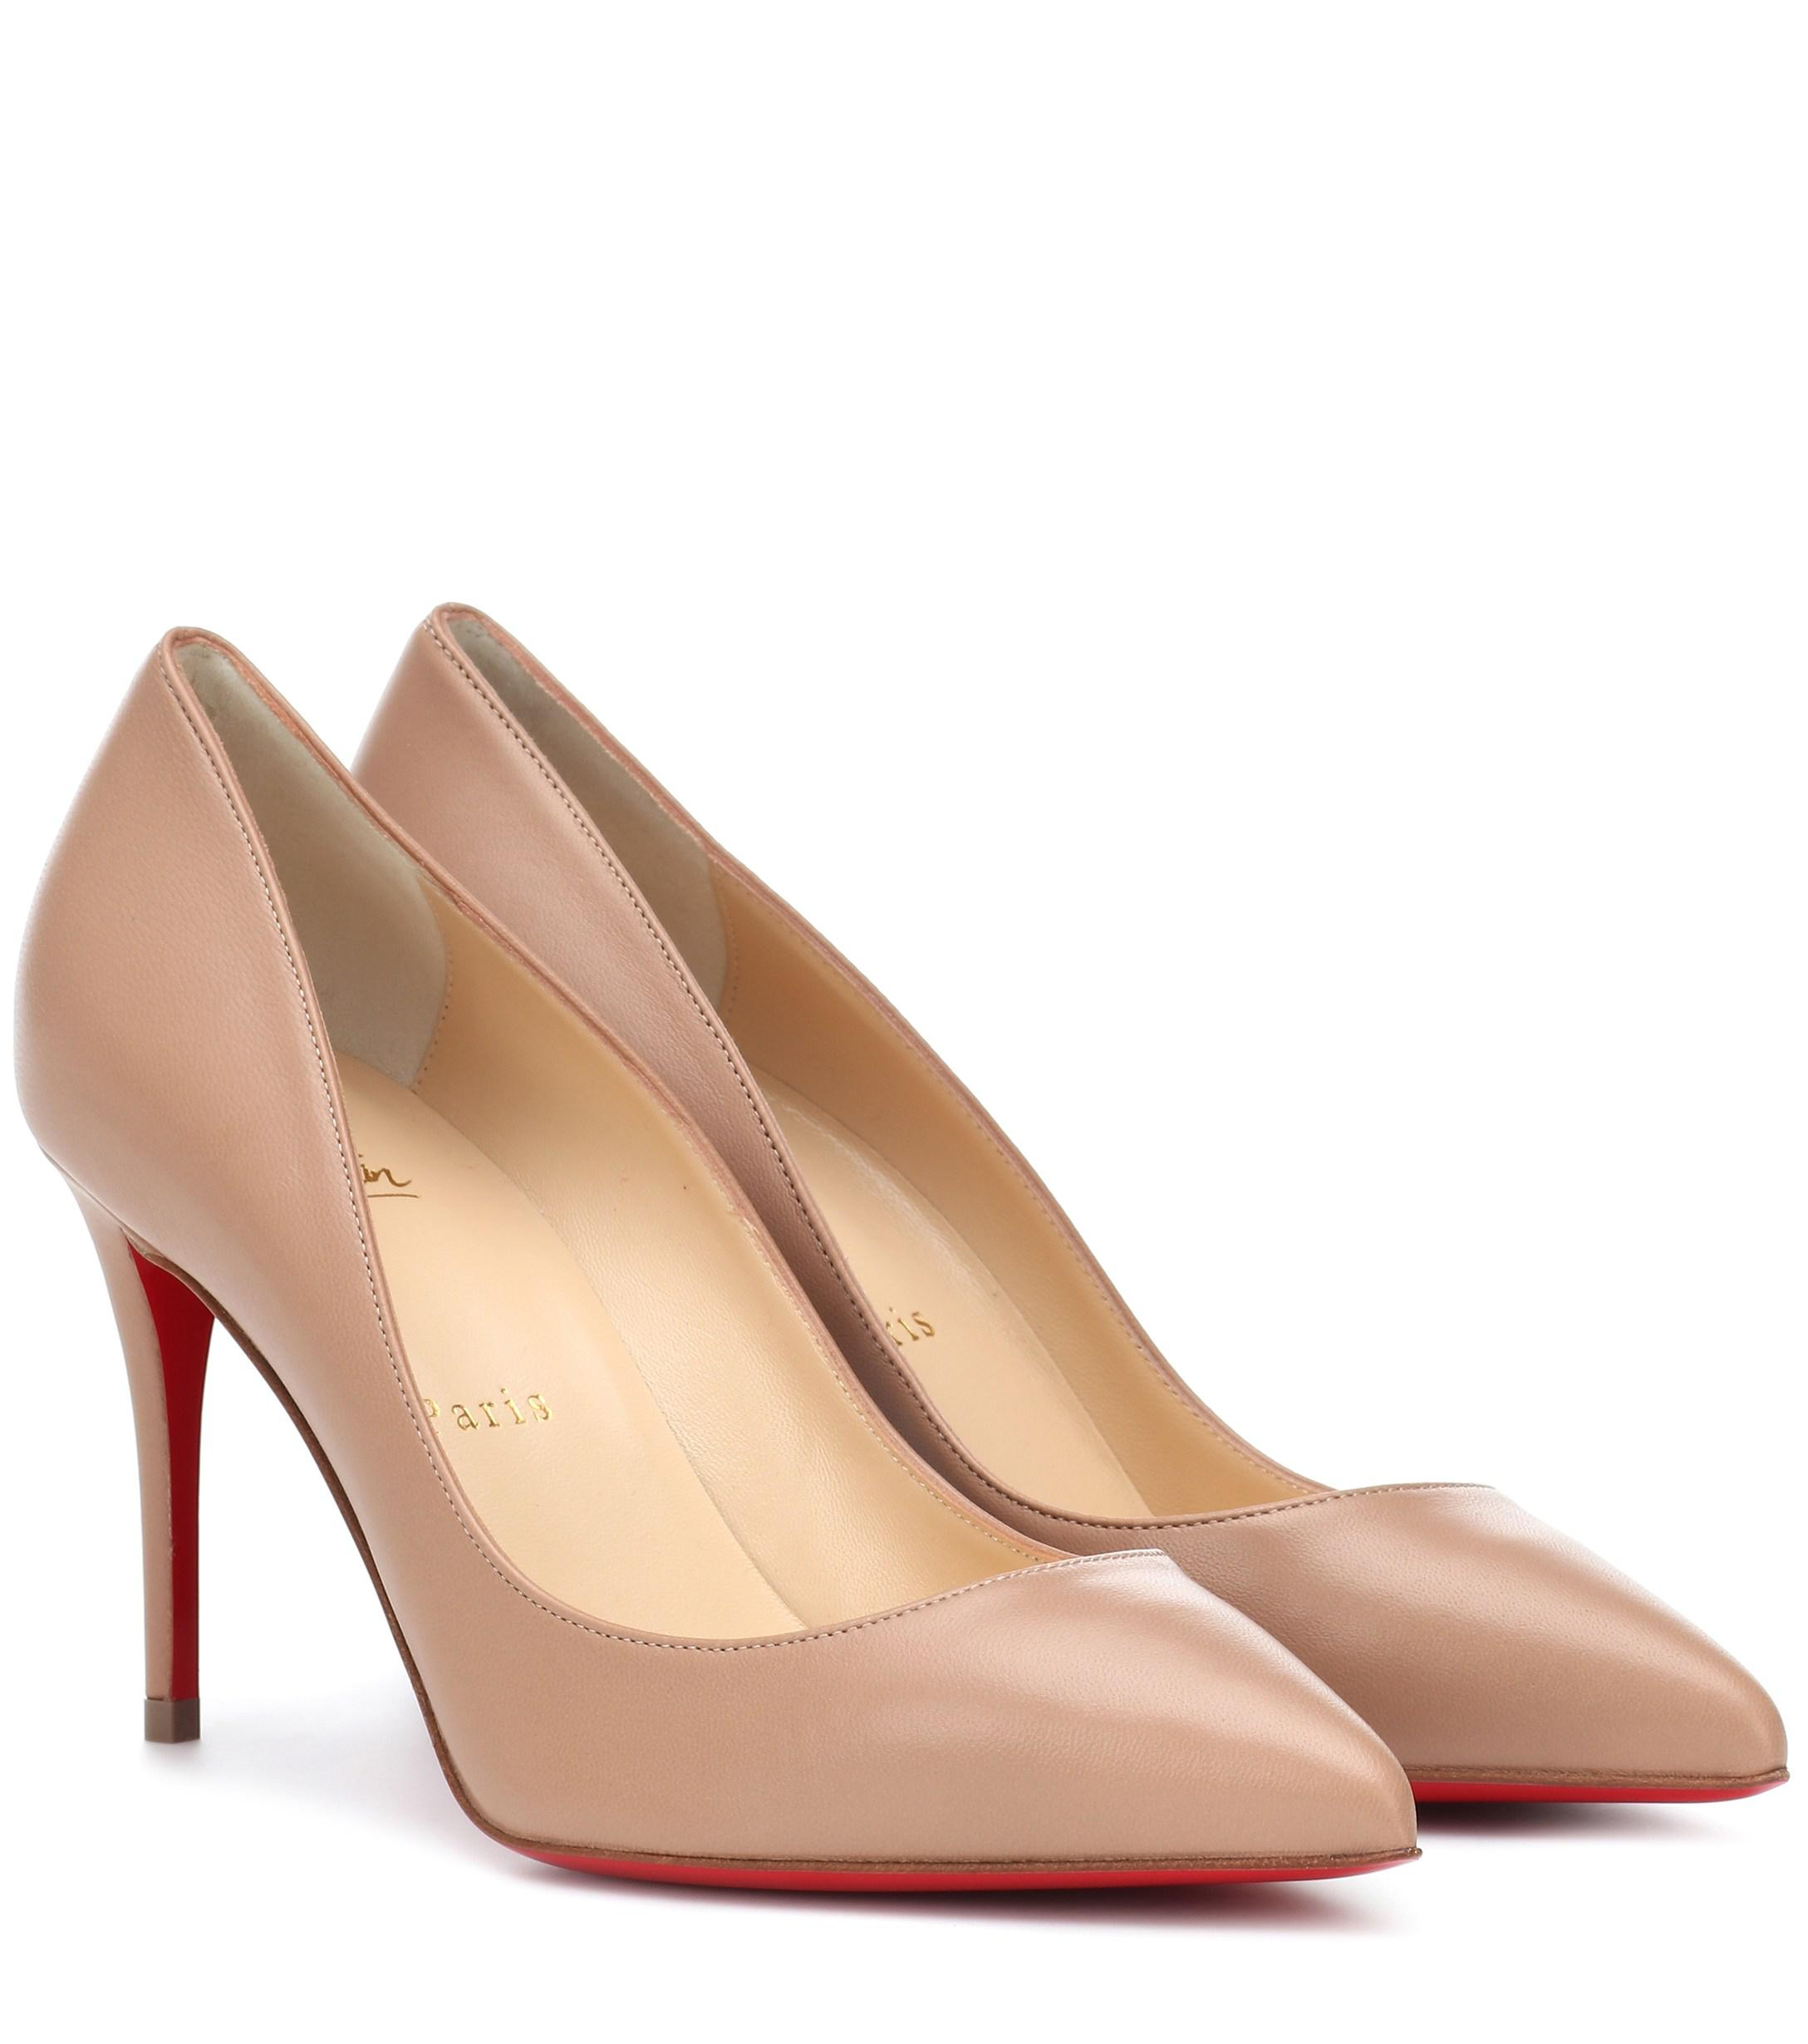 24de7b6c69 Christian Louboutin Pigalle Follies 85 Leather Pumps in Natural - Lyst